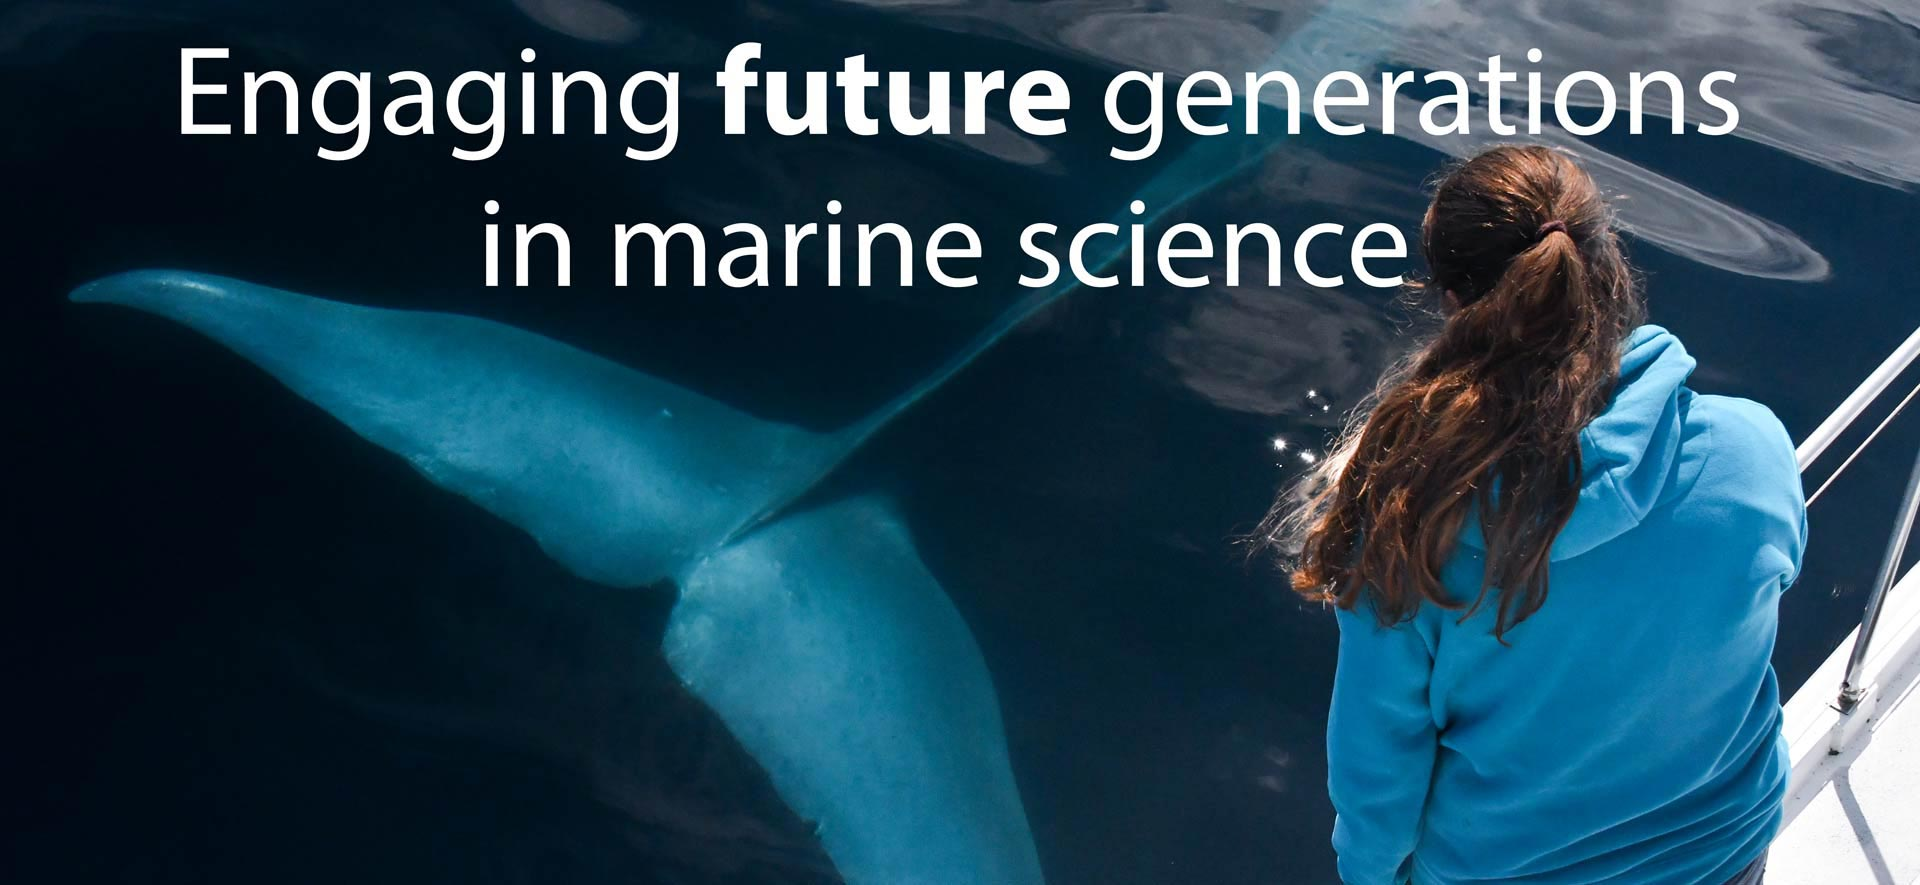 Marine mammal research and education